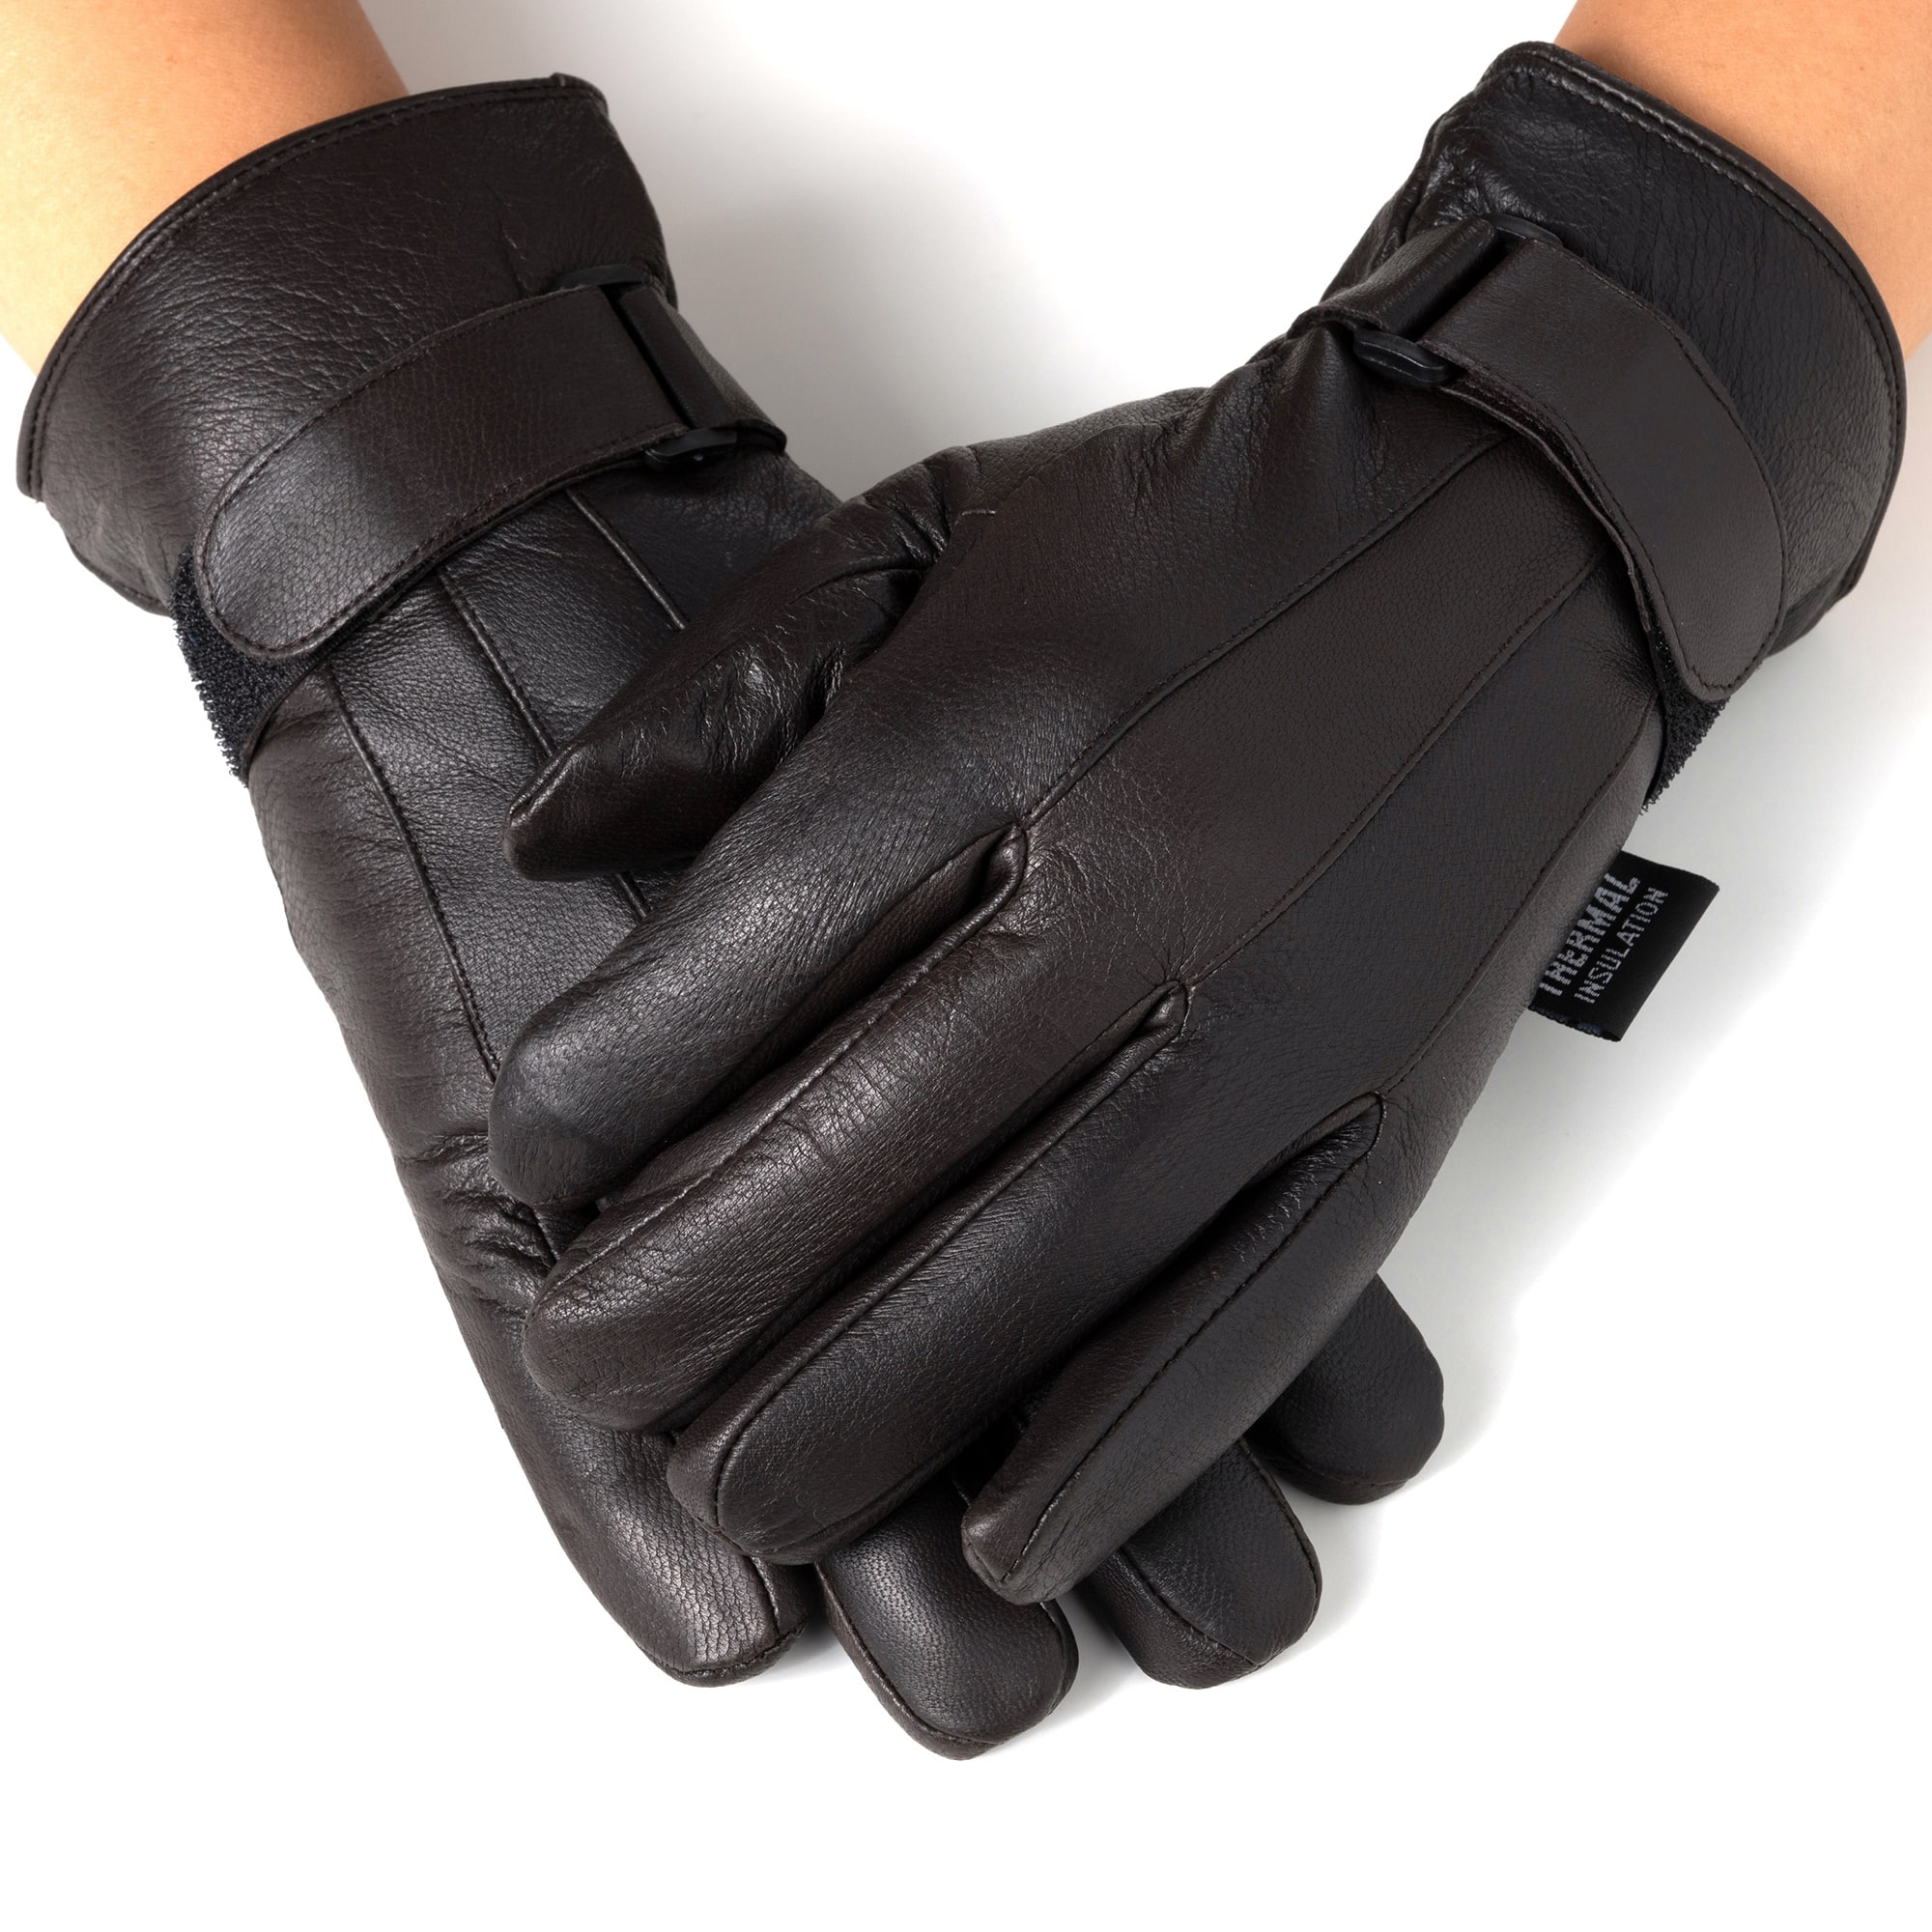 Alpine Swiss Men's Genuine Leather Warm Thermal Lined Glove (BR or BLK) $7.99 (Ladies $8.99) & More - eBay +Free Shipping